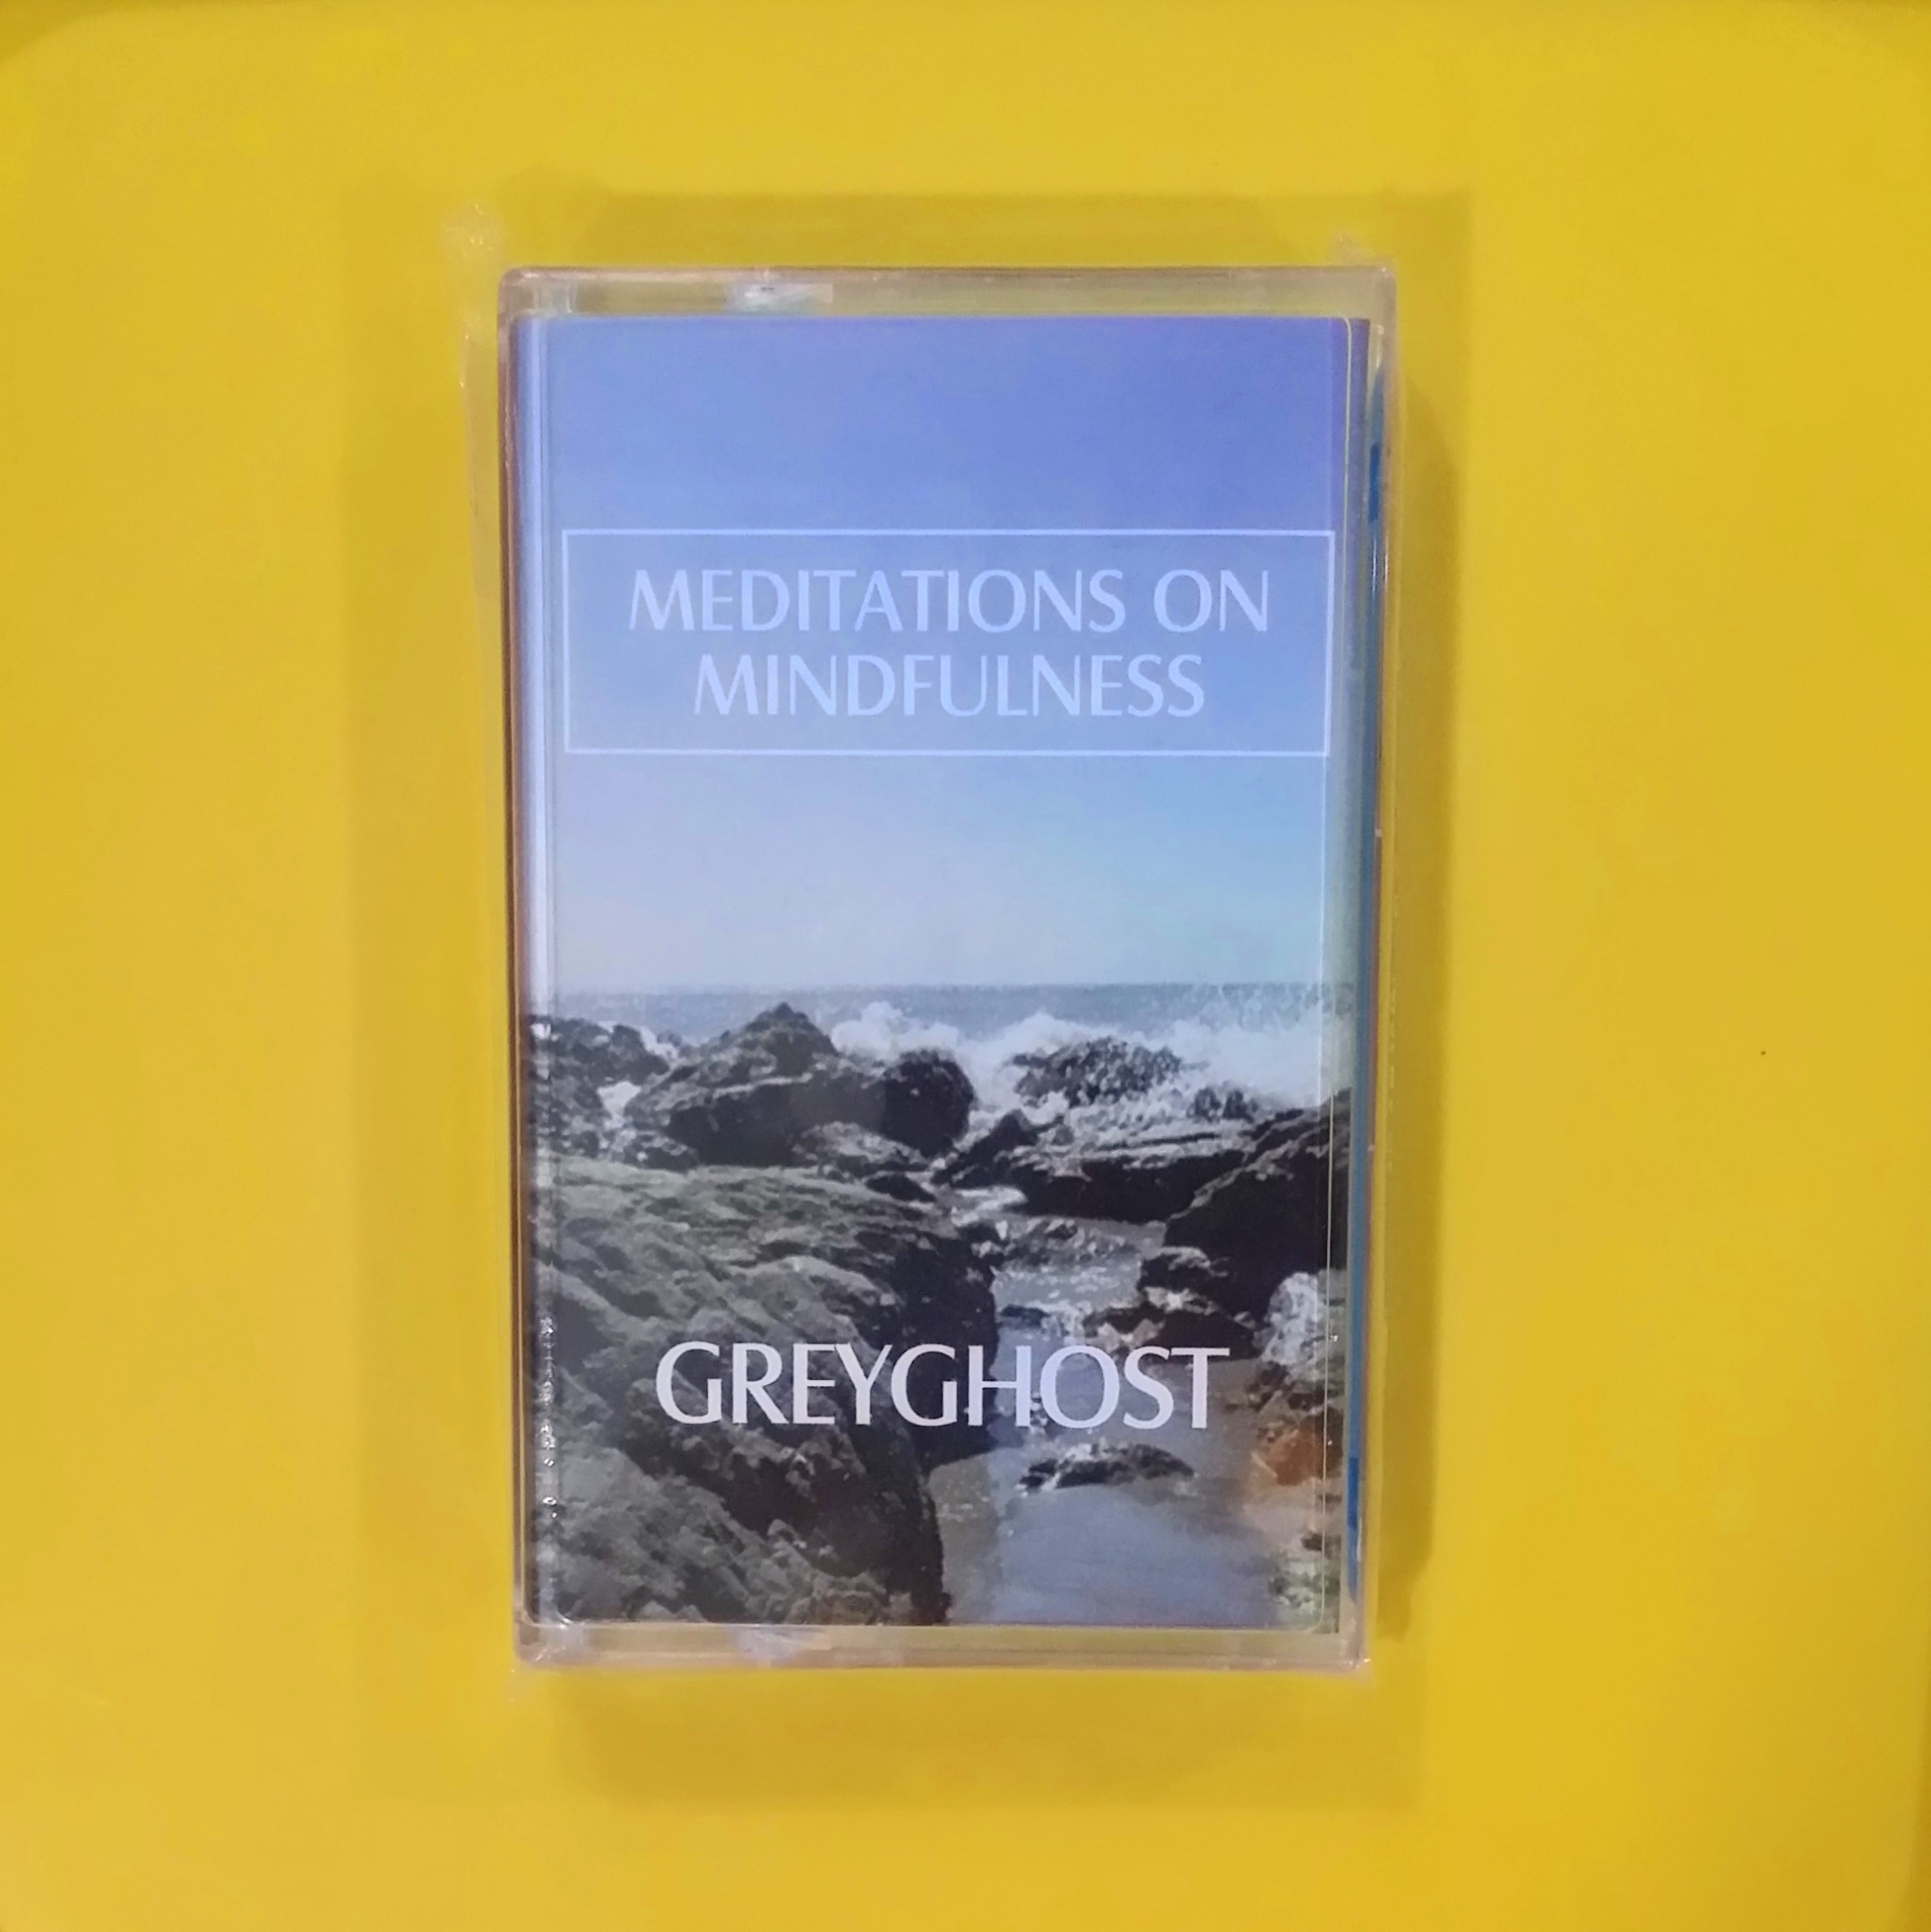 GREYGHOST - Meditations on Mindfulness (Constellation Tatsu)